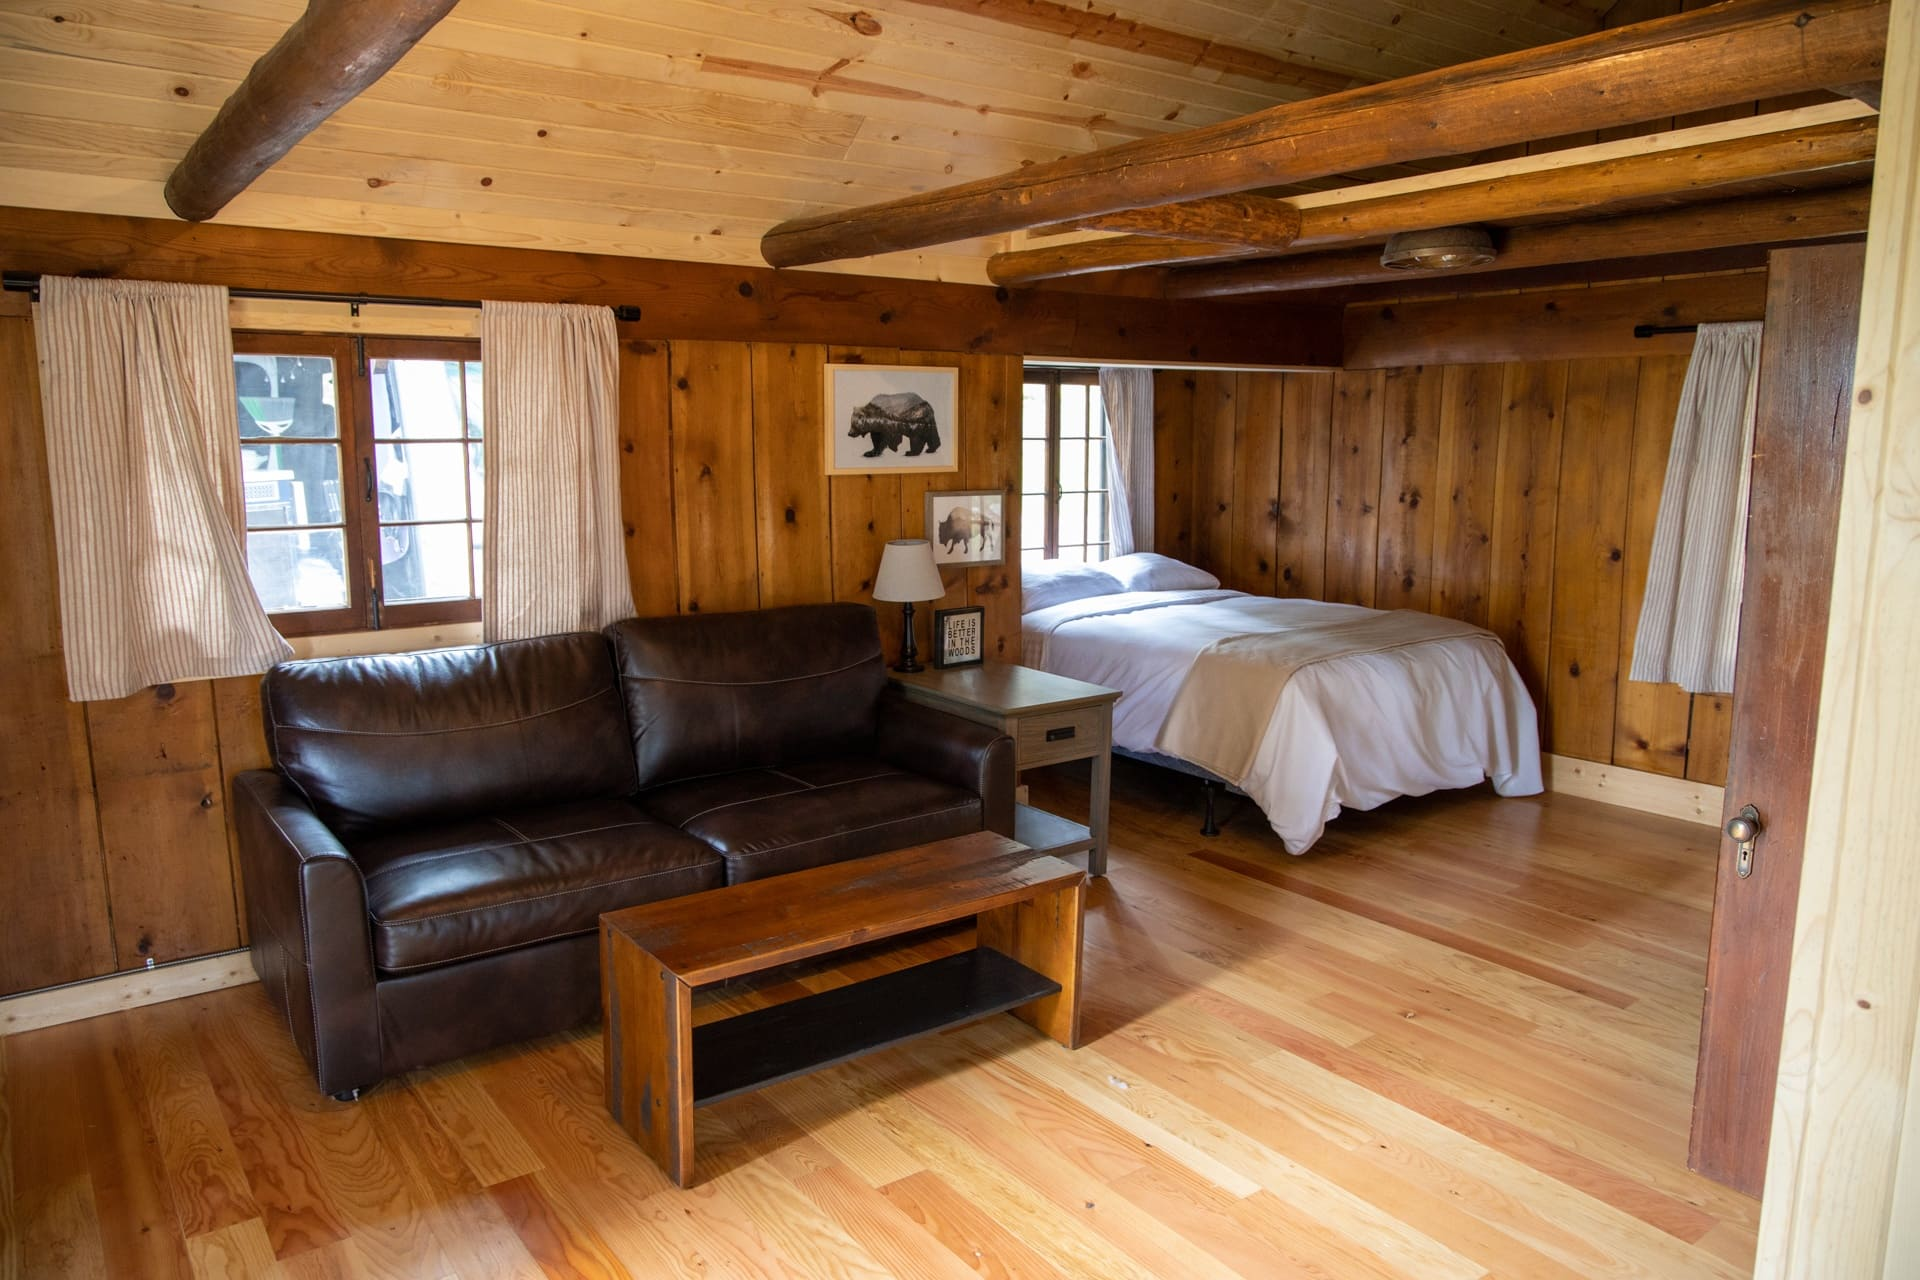 Plan a relaxing getaway to a cozy cabin at Cascade Idaho's Warm Lake Lodge where you can paddle board, boat, birdwatch, soak in hot springs & more.